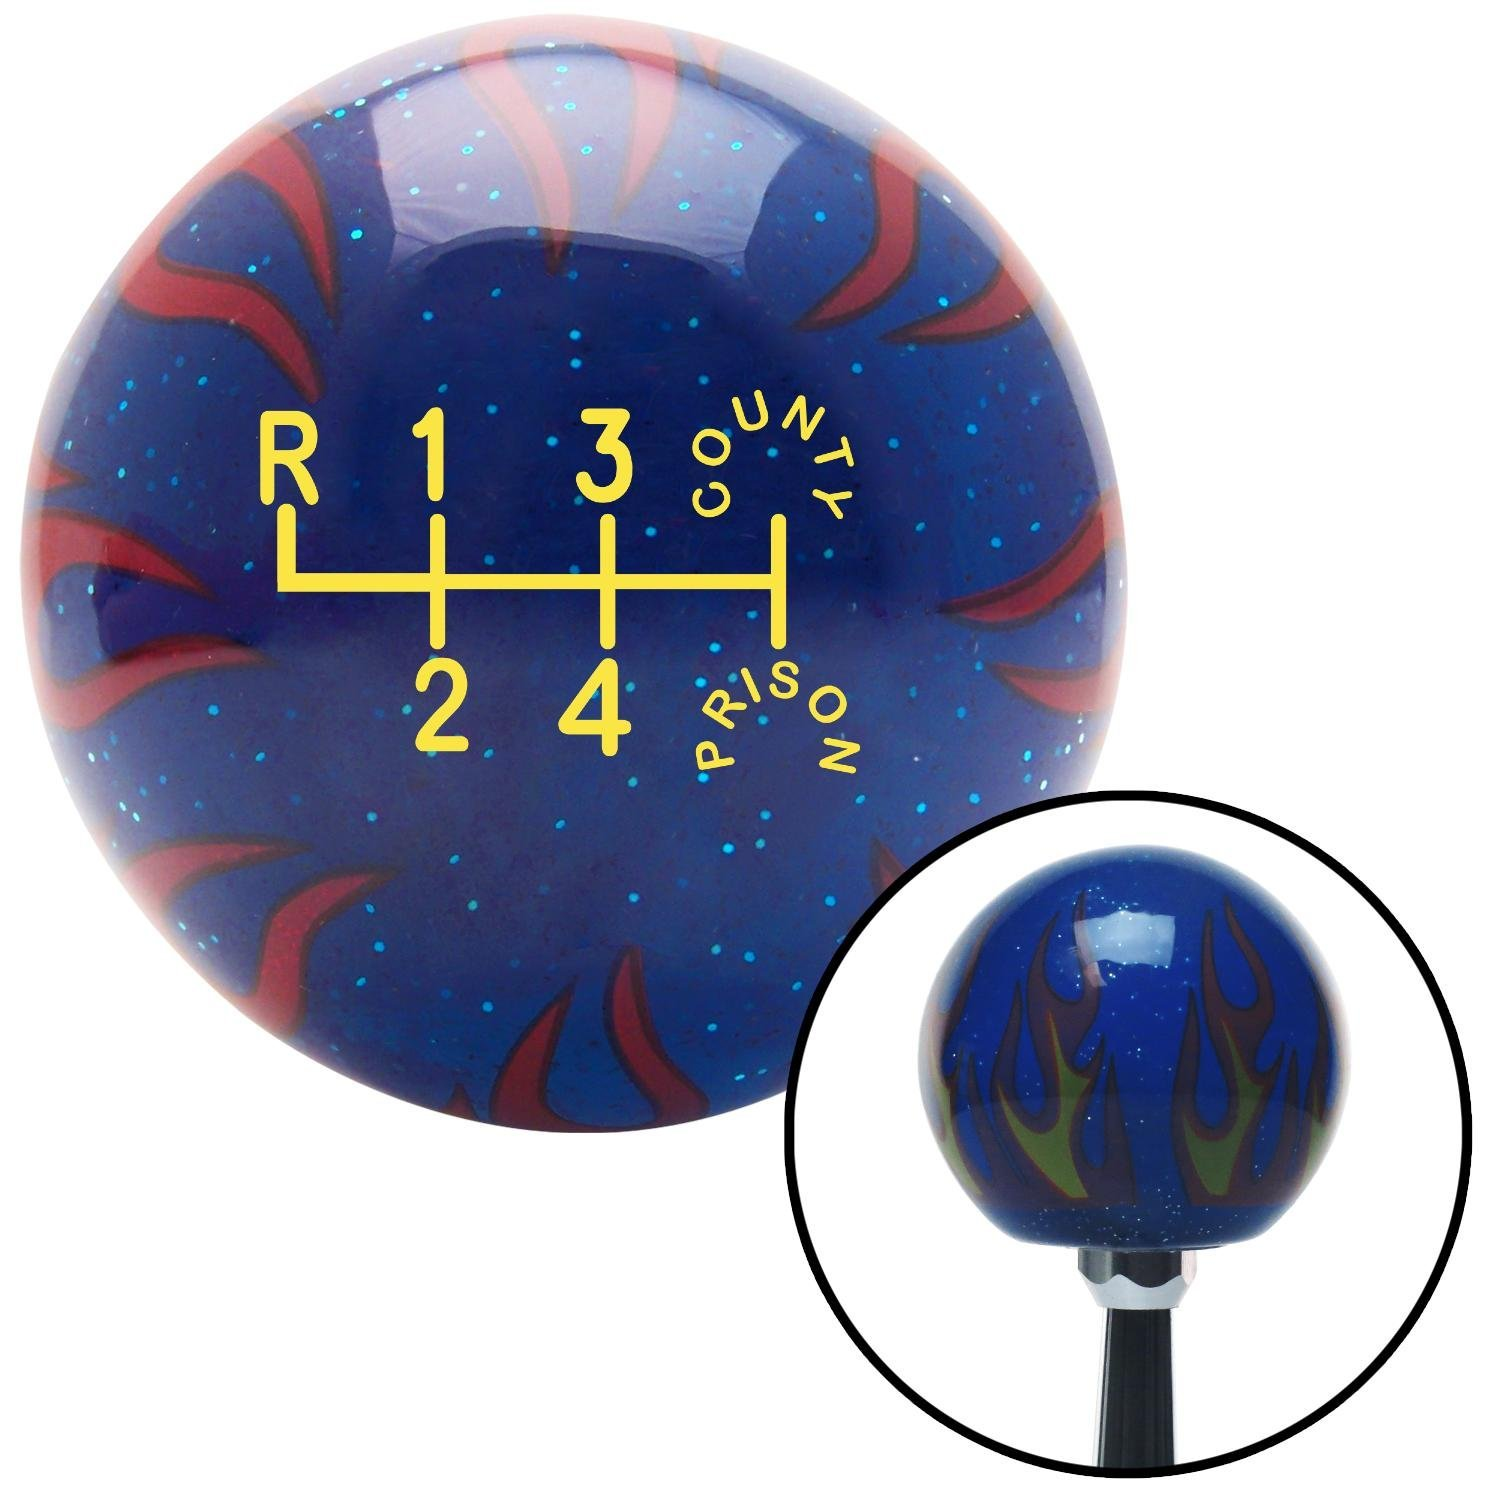 Yellow County Prison American Shifter 244123 Blue Flame Metal Flake Shift Knob with M16 x 1.5 Insert